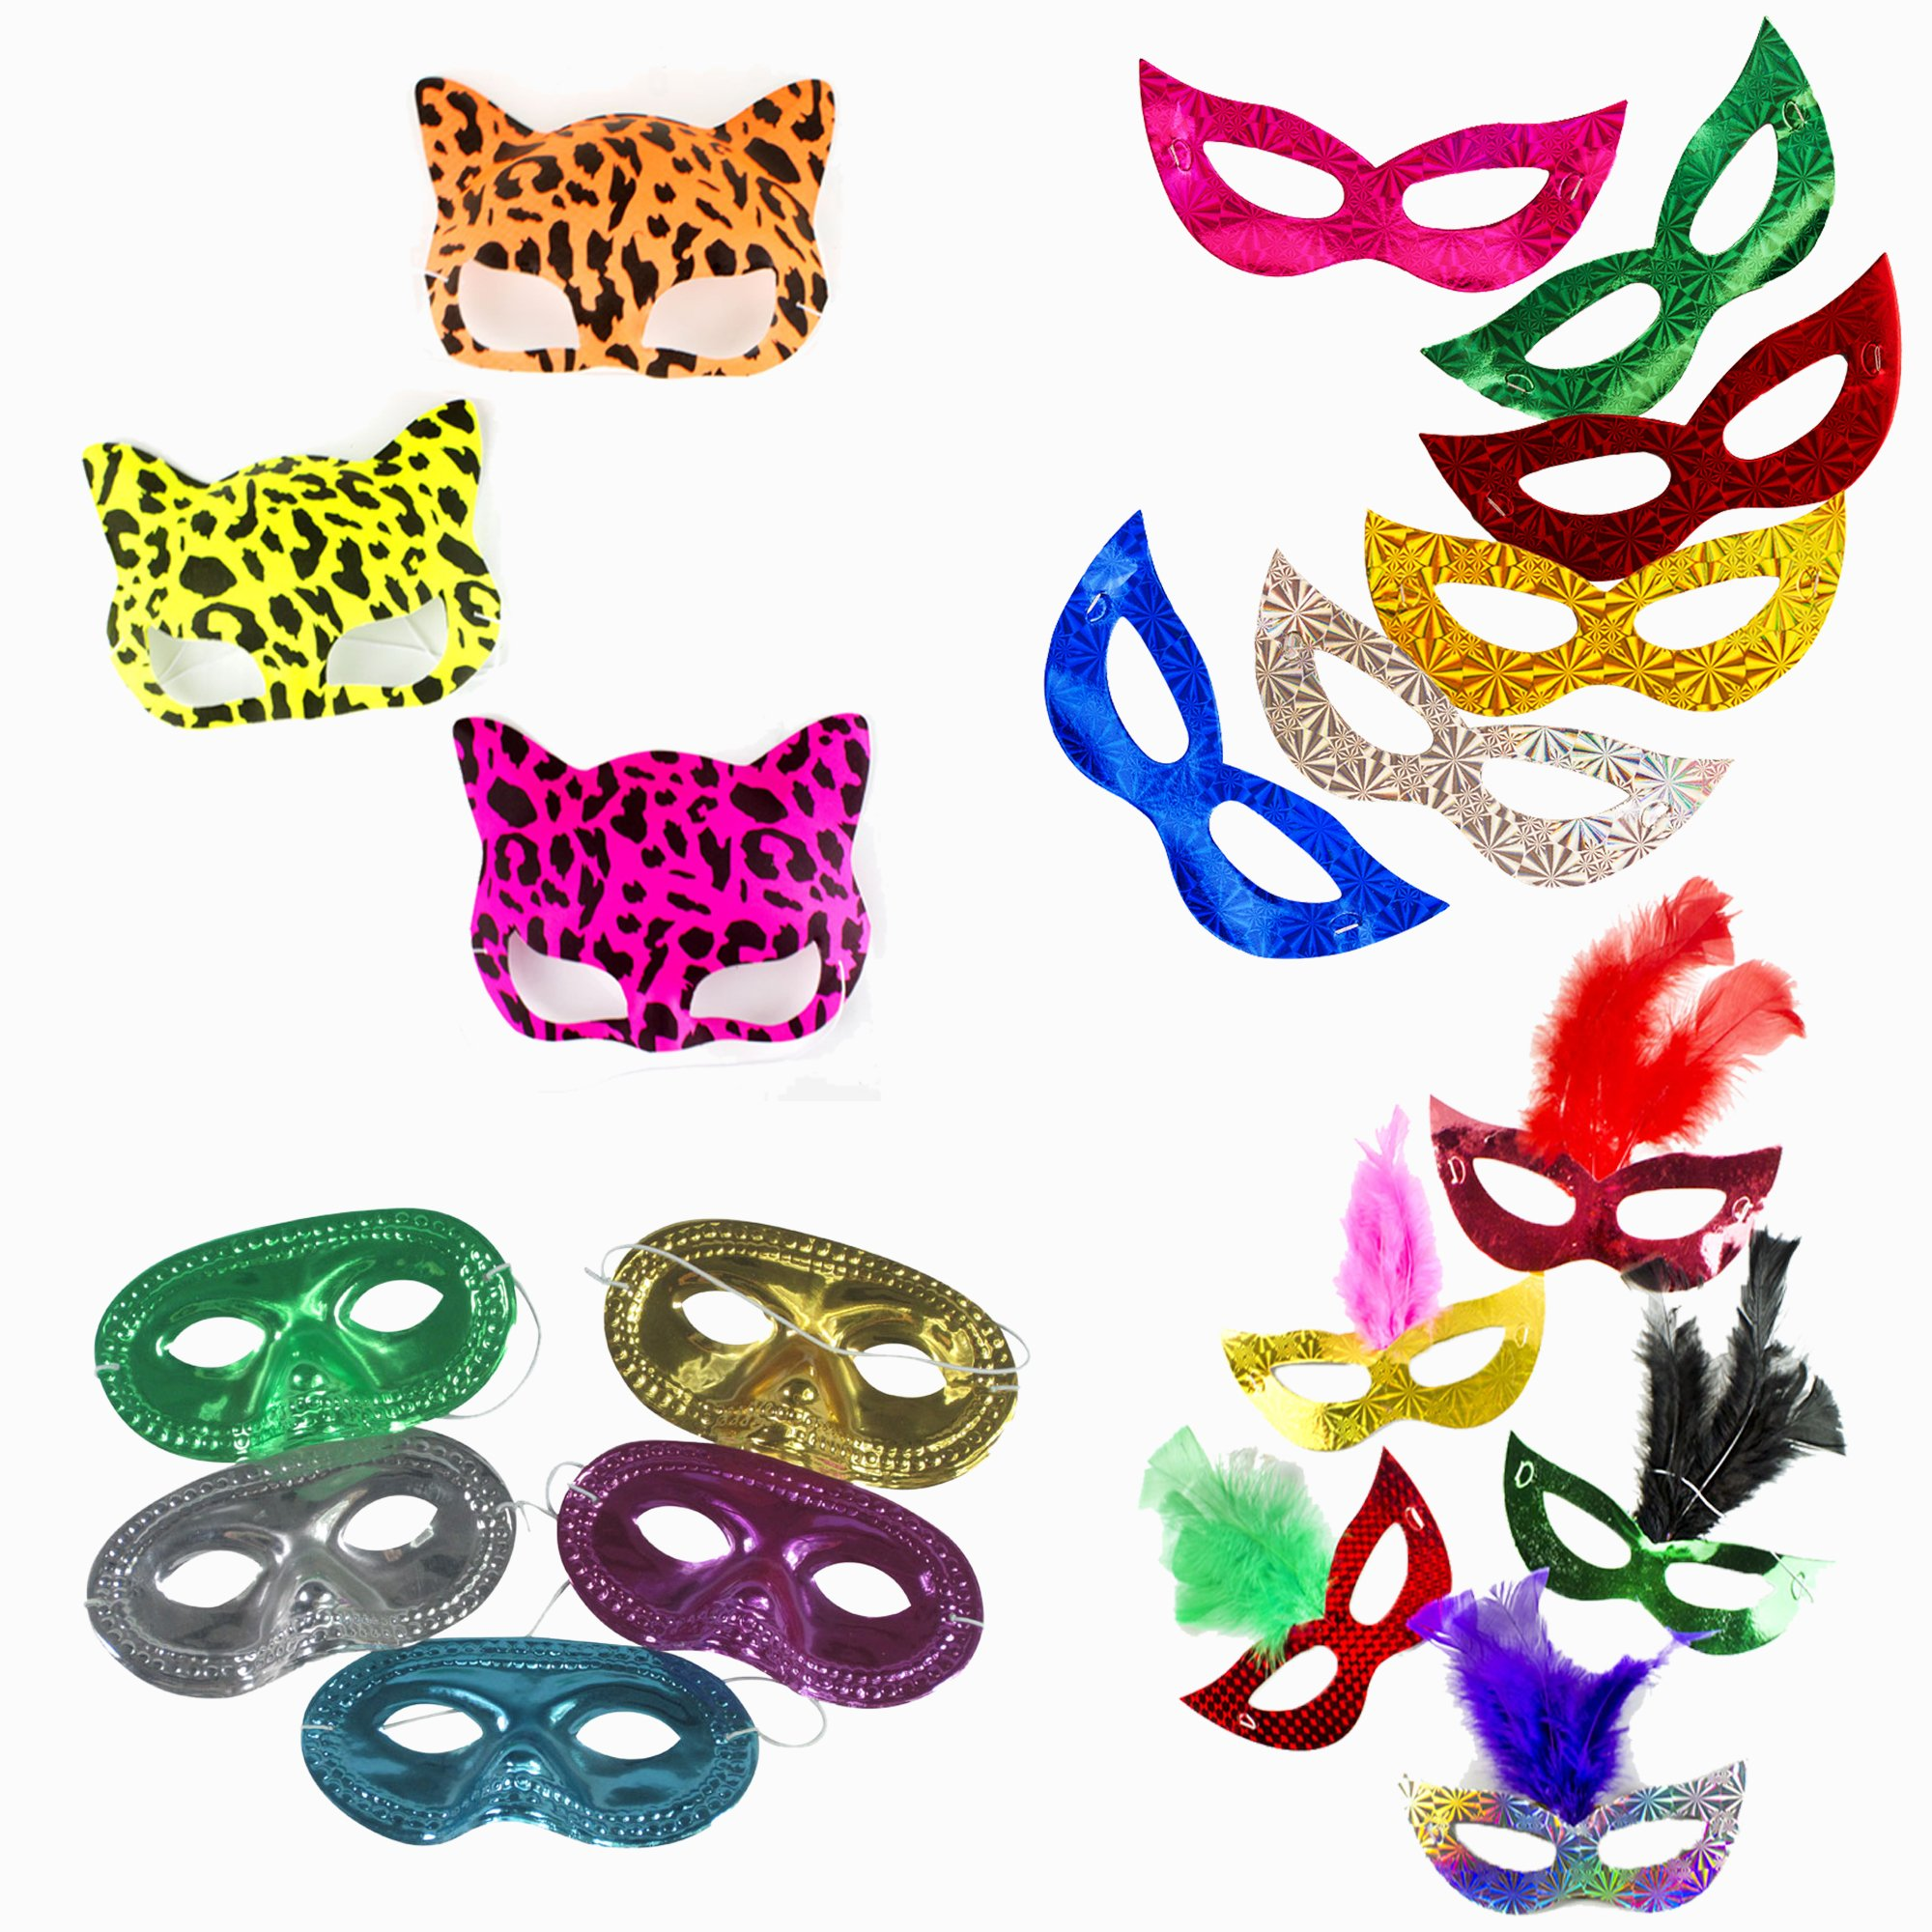 Fun Central (BC830, Mask Party Pack, Party Masks for Kids, Masks Party Supplies, Includes: 12 Pcs of Metallic Half Mask, Prismatic Masks, Leopard Print Neon Cat Masks, and Prismatic Feather Masks